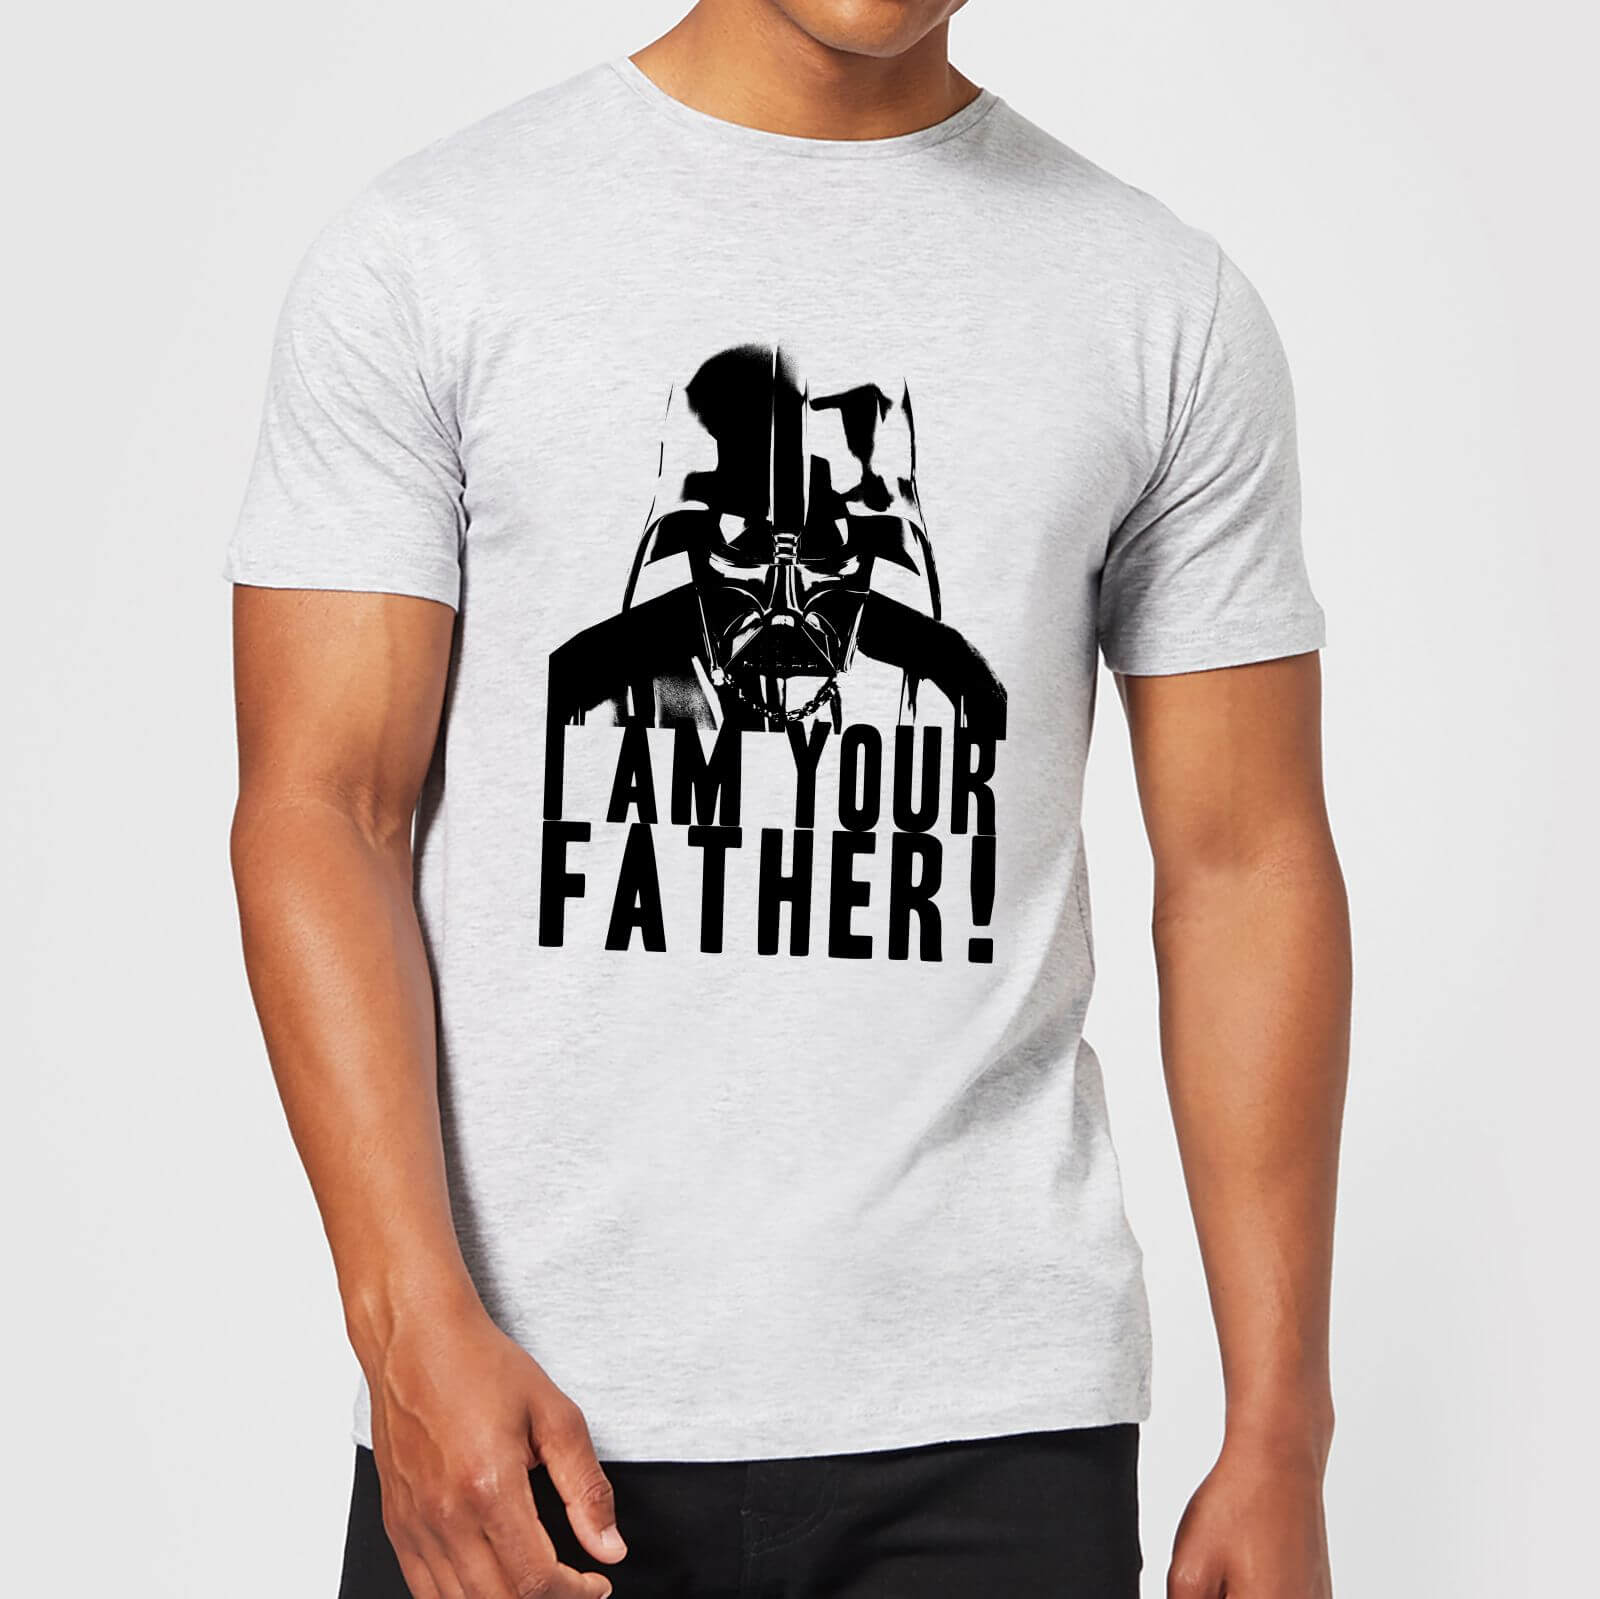 OfferteWeb.click 55-t-shirt-star-wars-darth-vader-i-am-your-father-confession